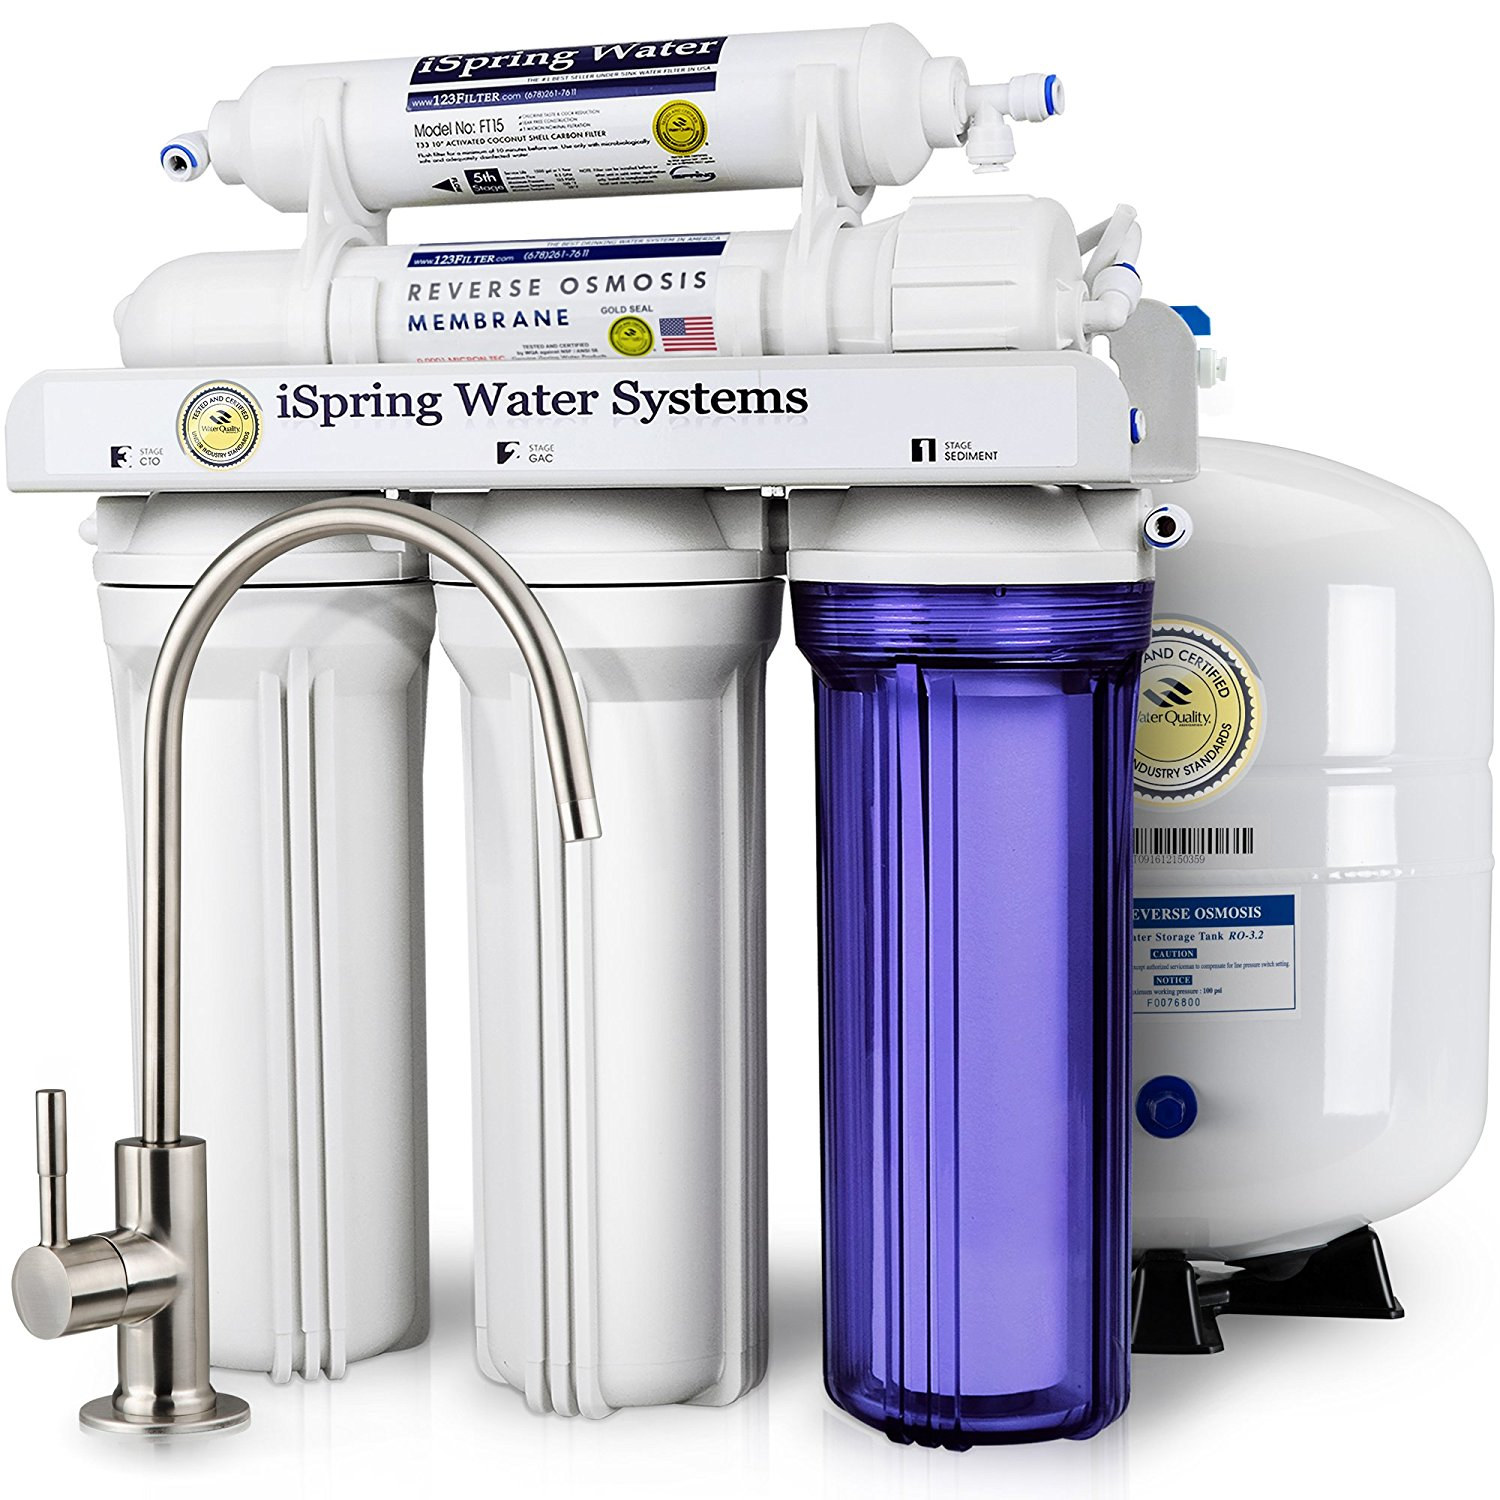 Reverse Osmosis Water Filter - This under the counter filter is a great option for true 100% filtration.